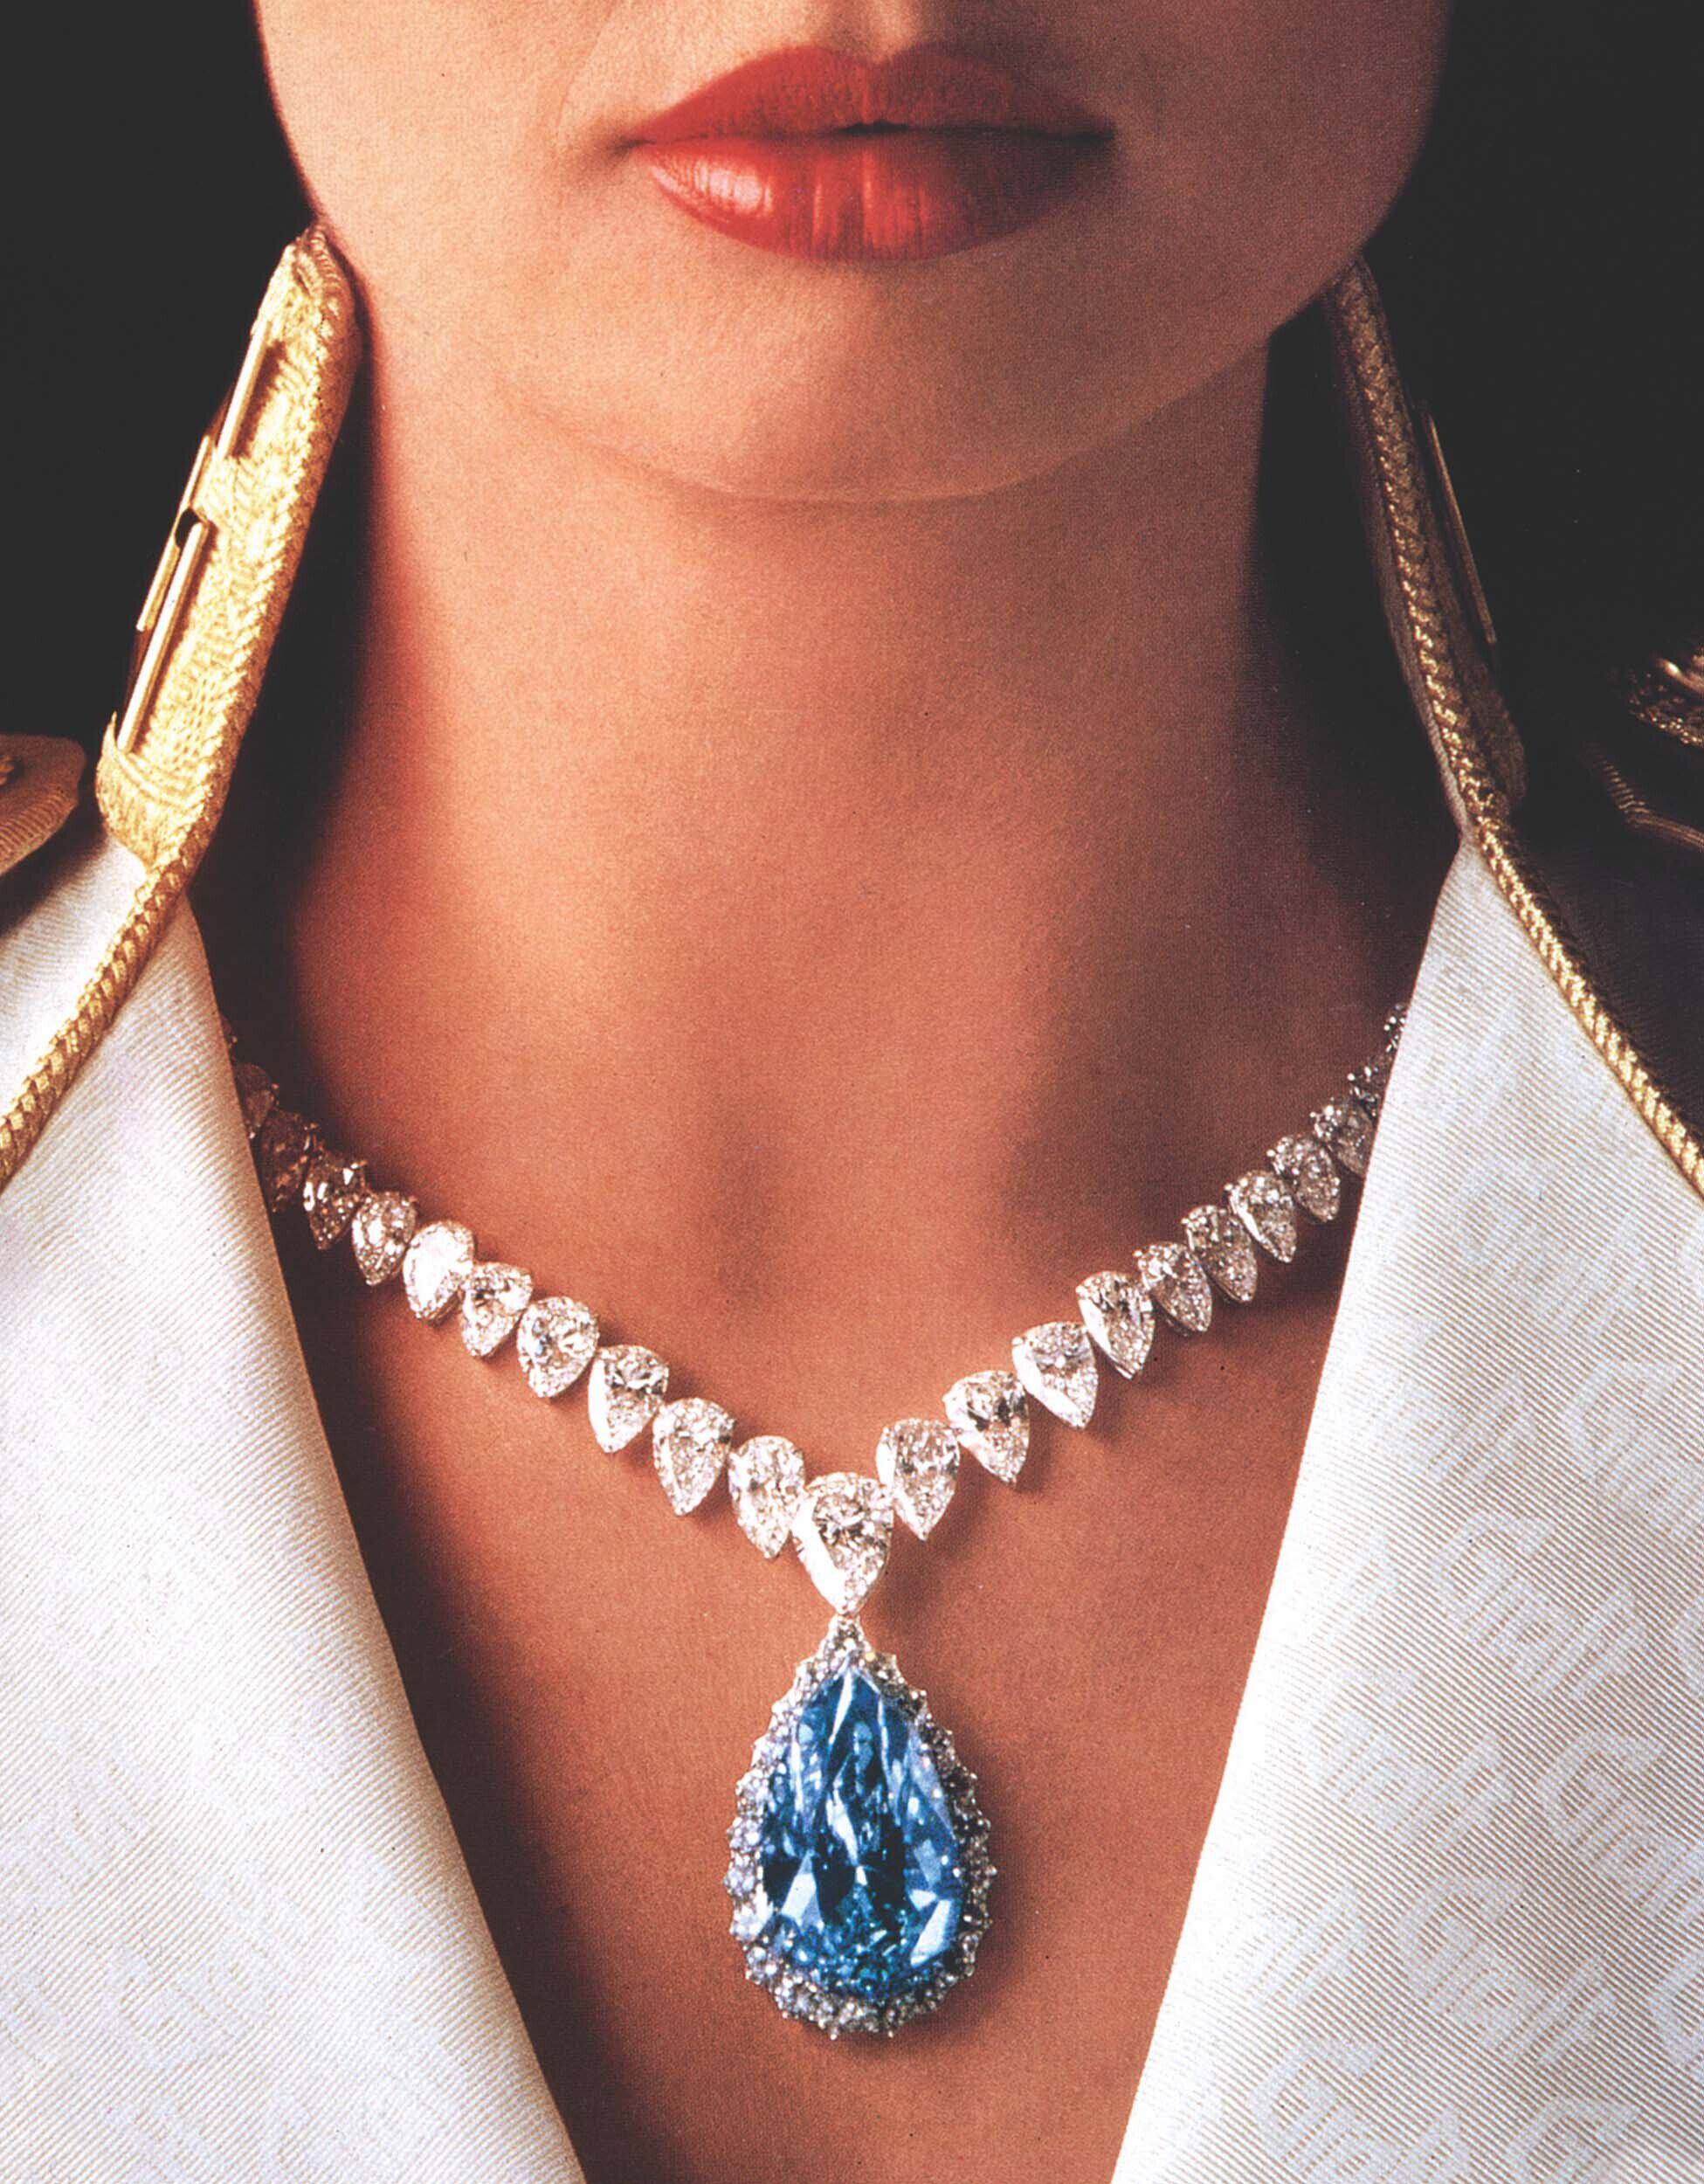 Close up of a model wearing a Graff blue and white diamond high jewellery necklace